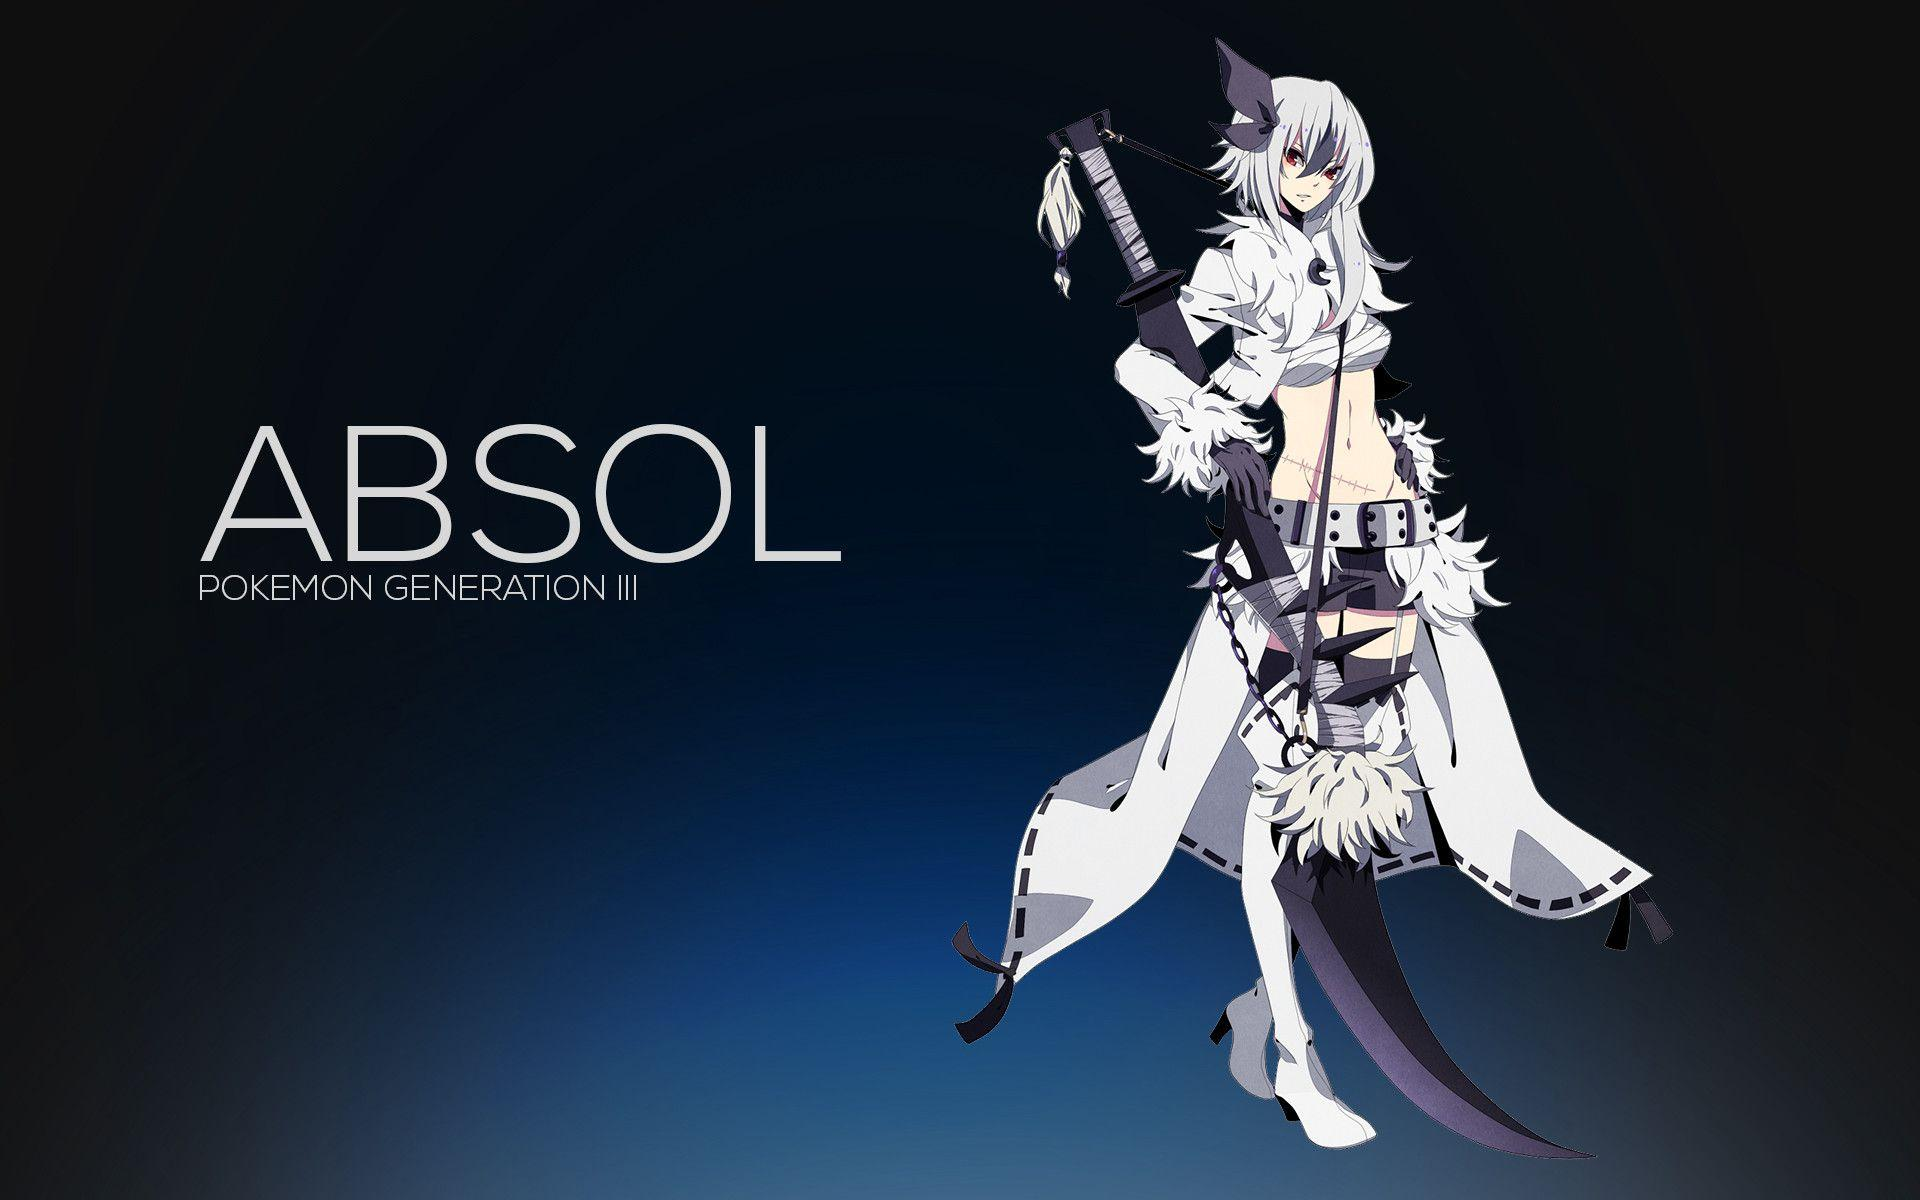 absol wallpapers download free hd desktop wallpapers cool image